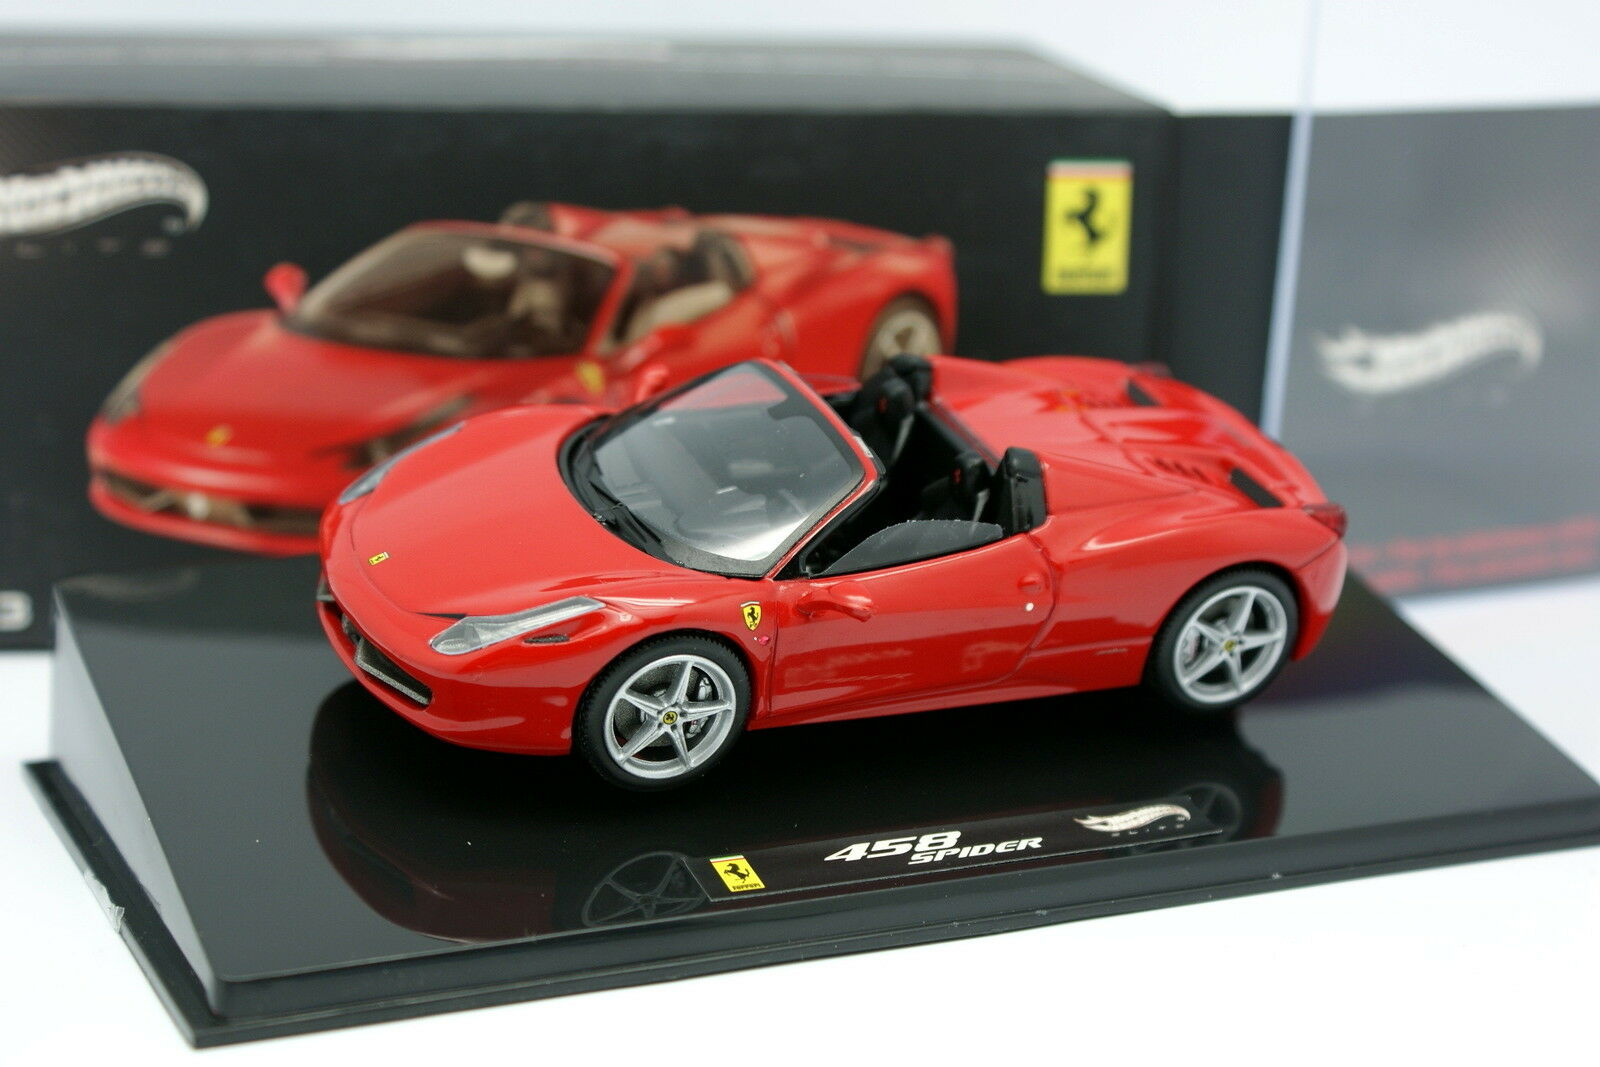 Hot Wheels 1 43 - - - Ferrari 458 Spider Red 731793